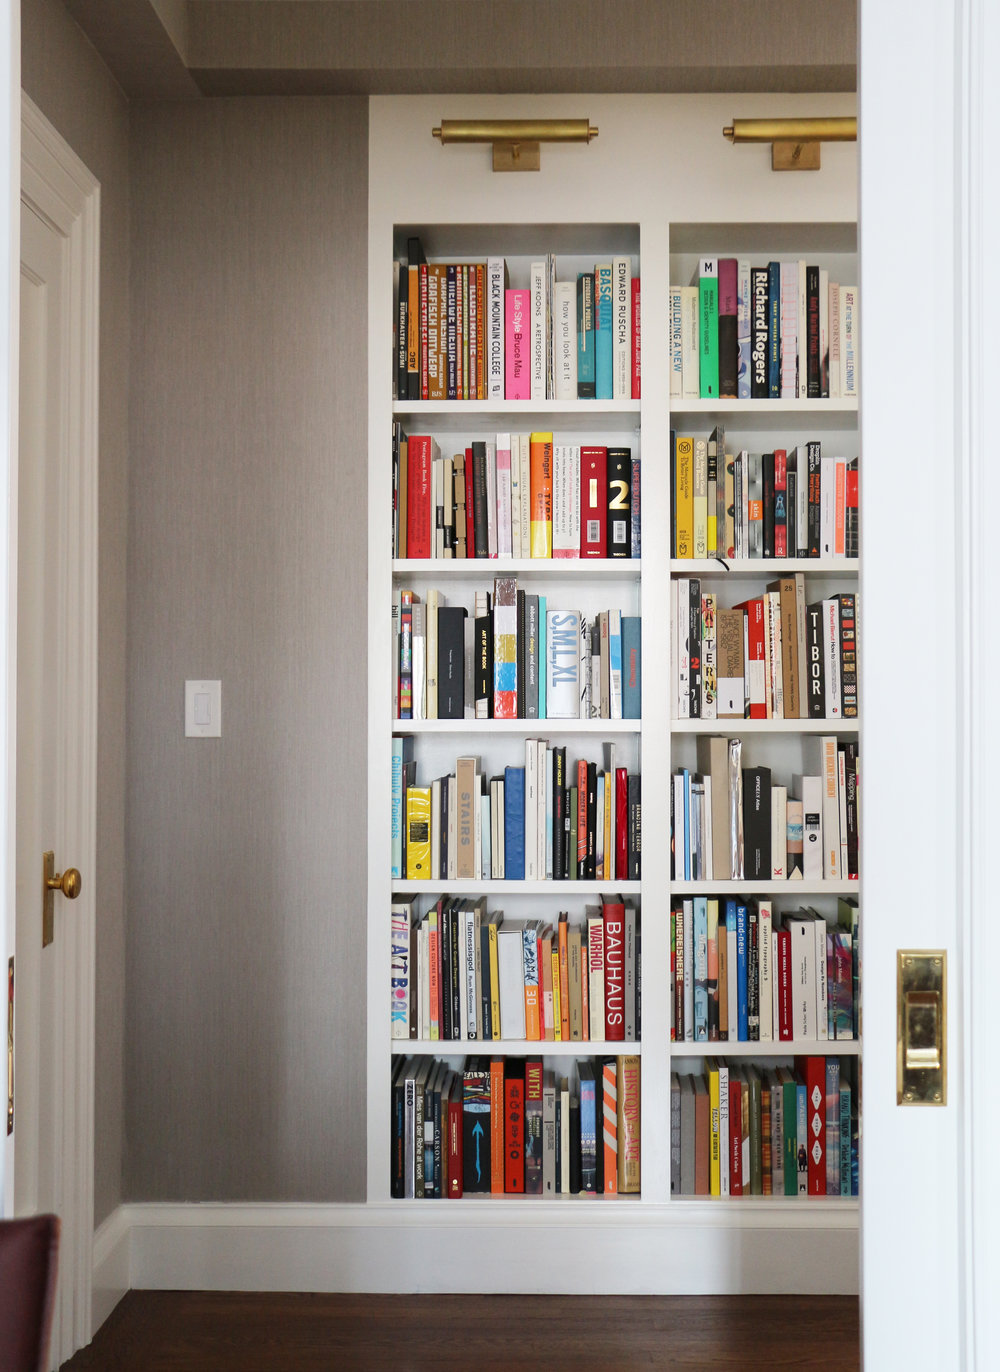 Bookshelves 1 Los Angeles Interior Designer.jpg